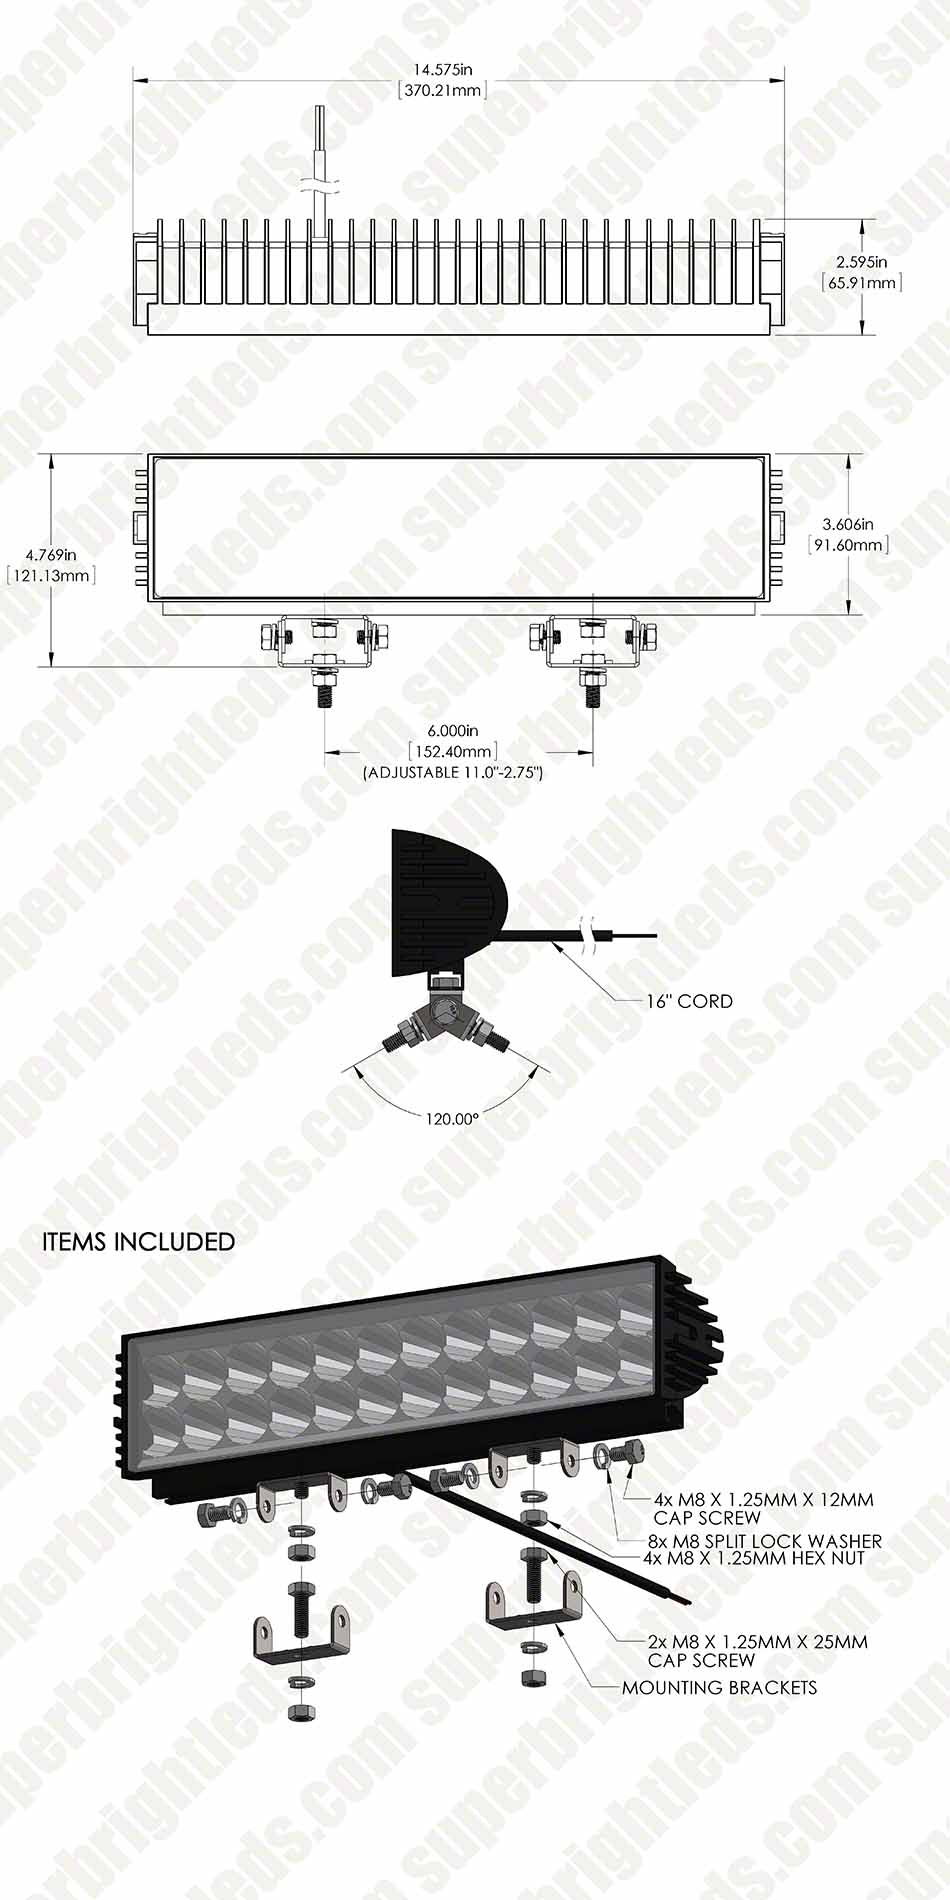 diagram for wiring led offroad lights diagram led offroad light wiring diagram solidfonts on diagram for wiring led offroad lights